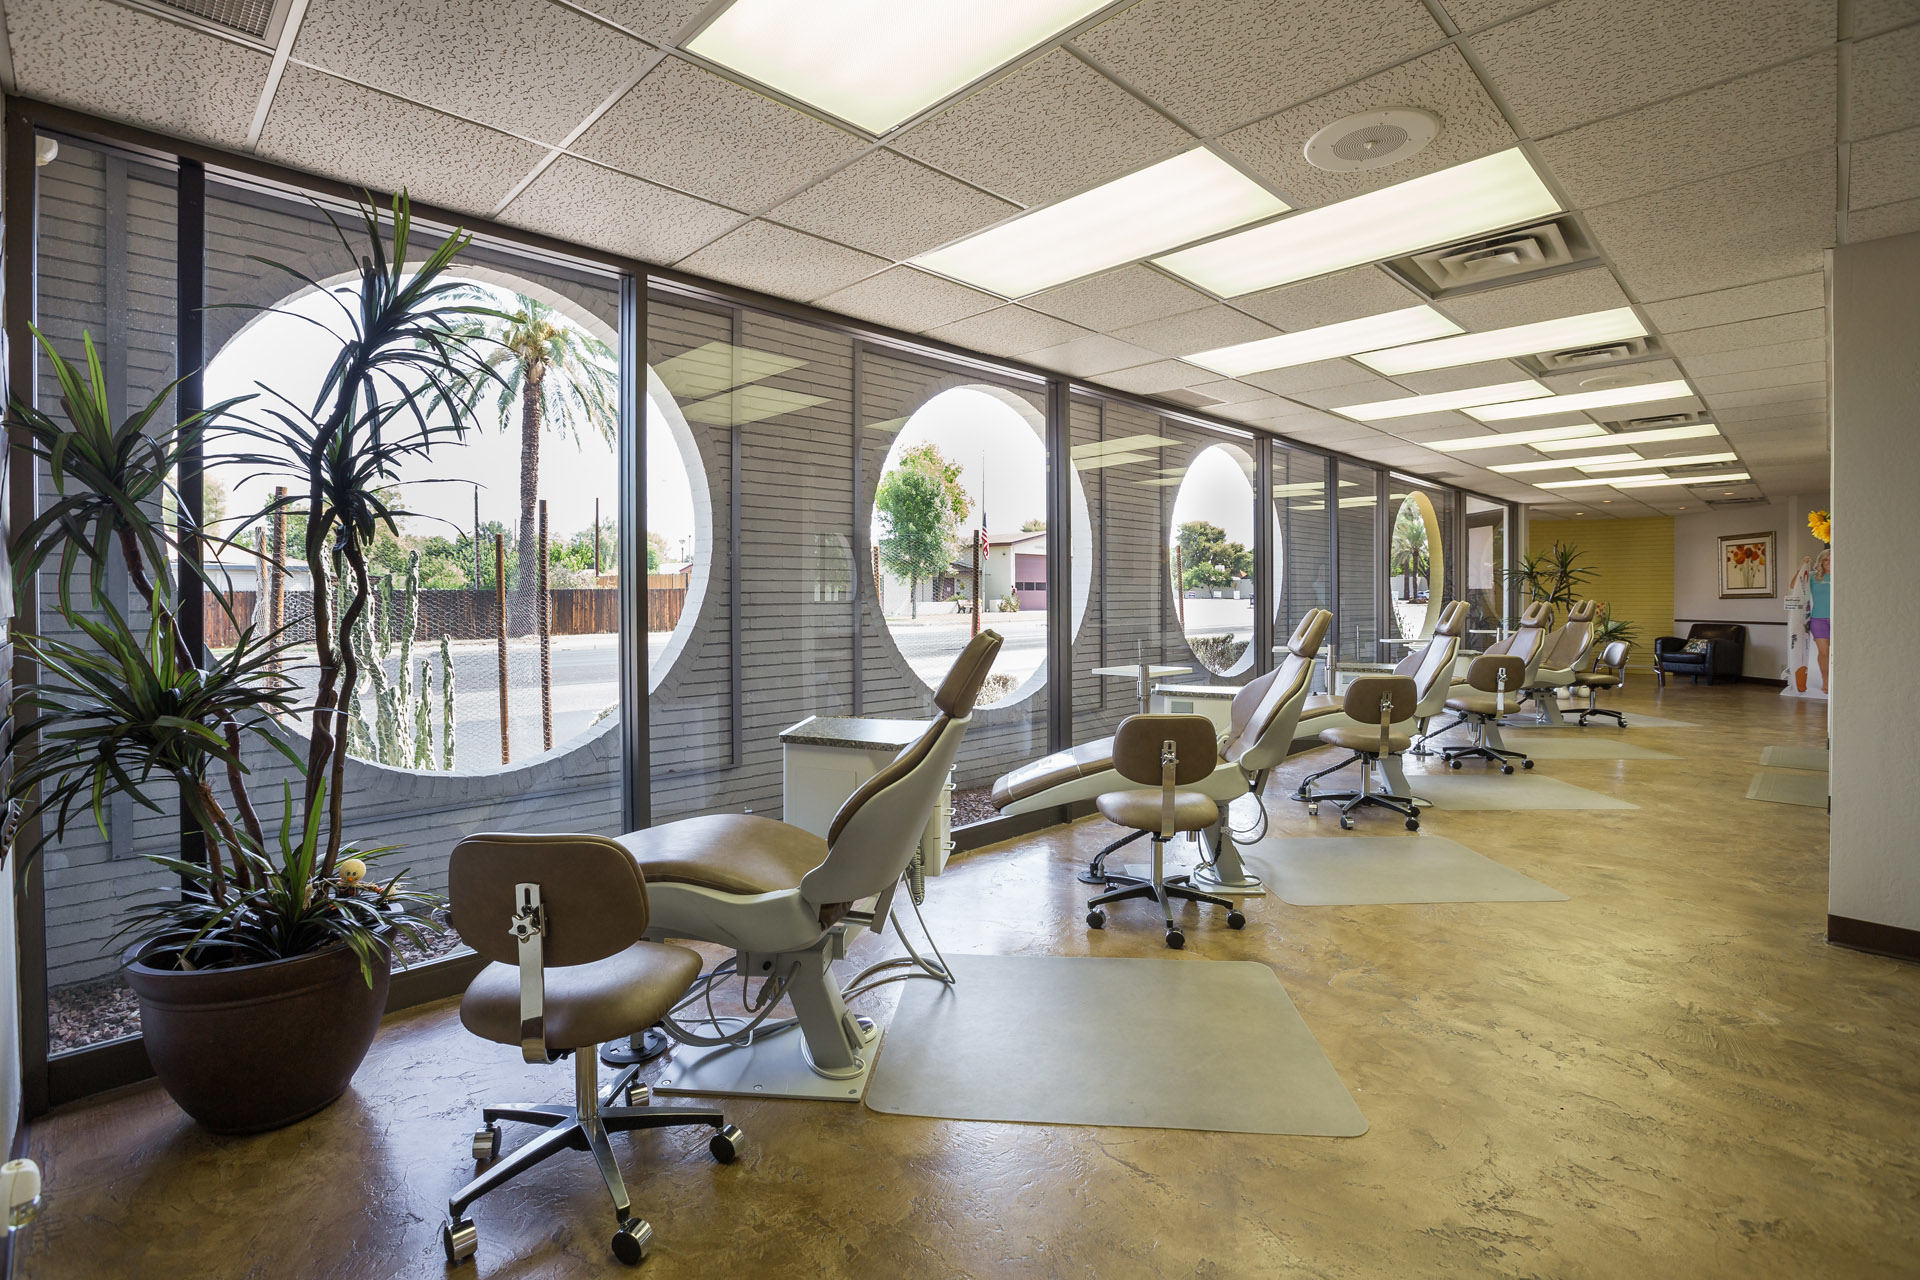 Orthodontist office in Phoenix for braces and Invisalign